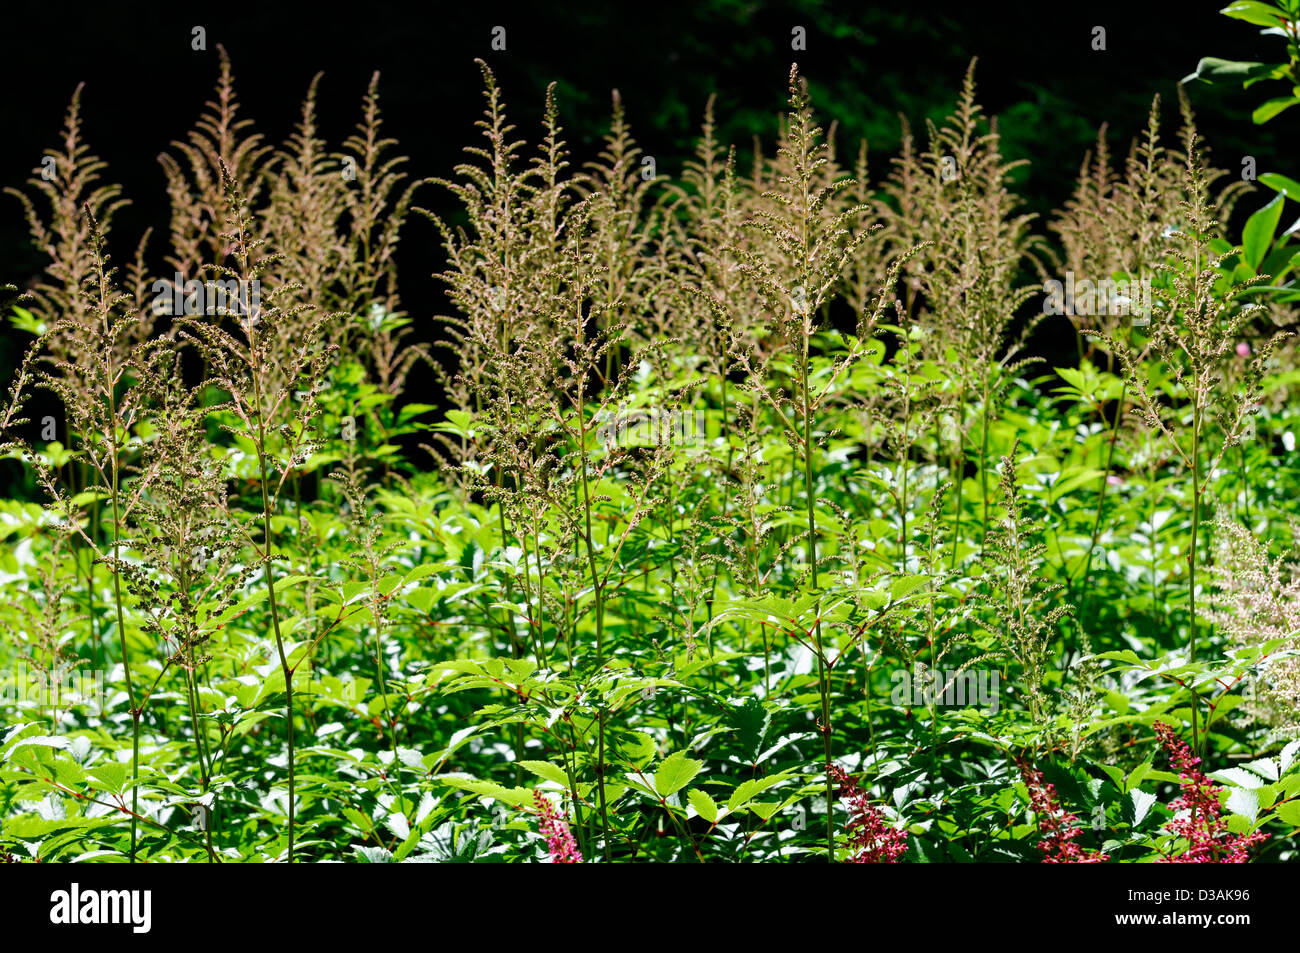 astilbe fluffy feathery perennials plant portraits closeup flowers flowering bloom - Stock Image